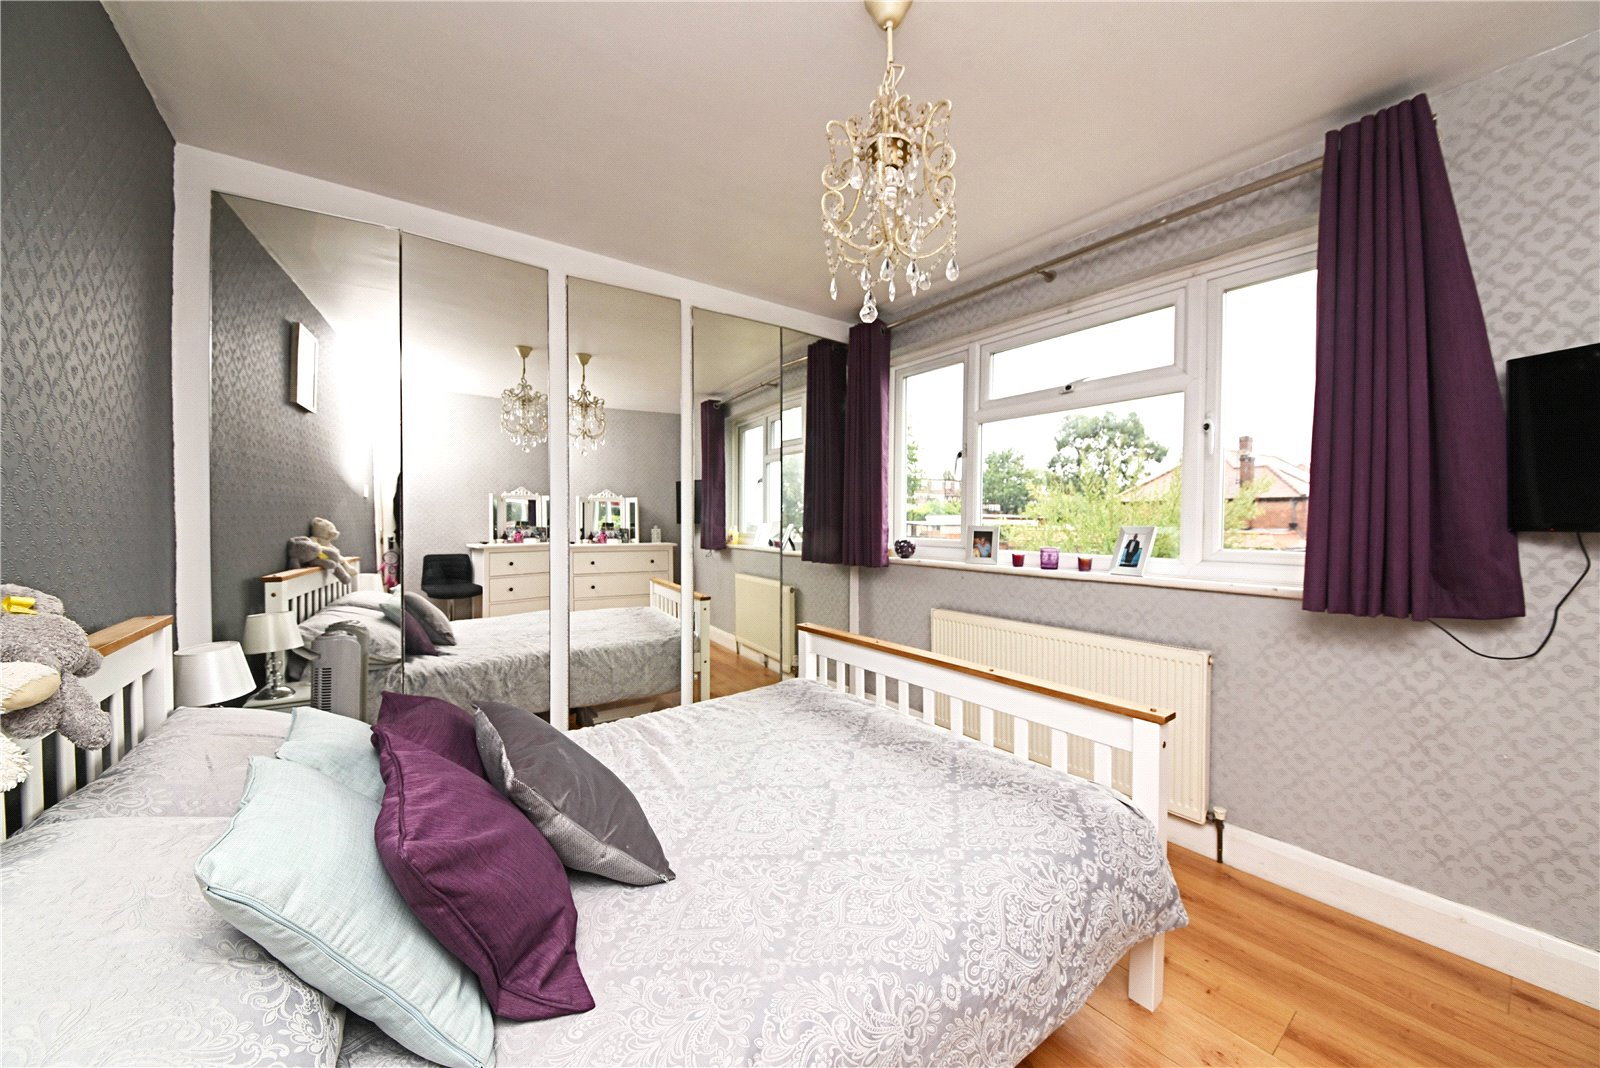 2 bed maisonette for sale in Oakwood, N14 4TL, N14